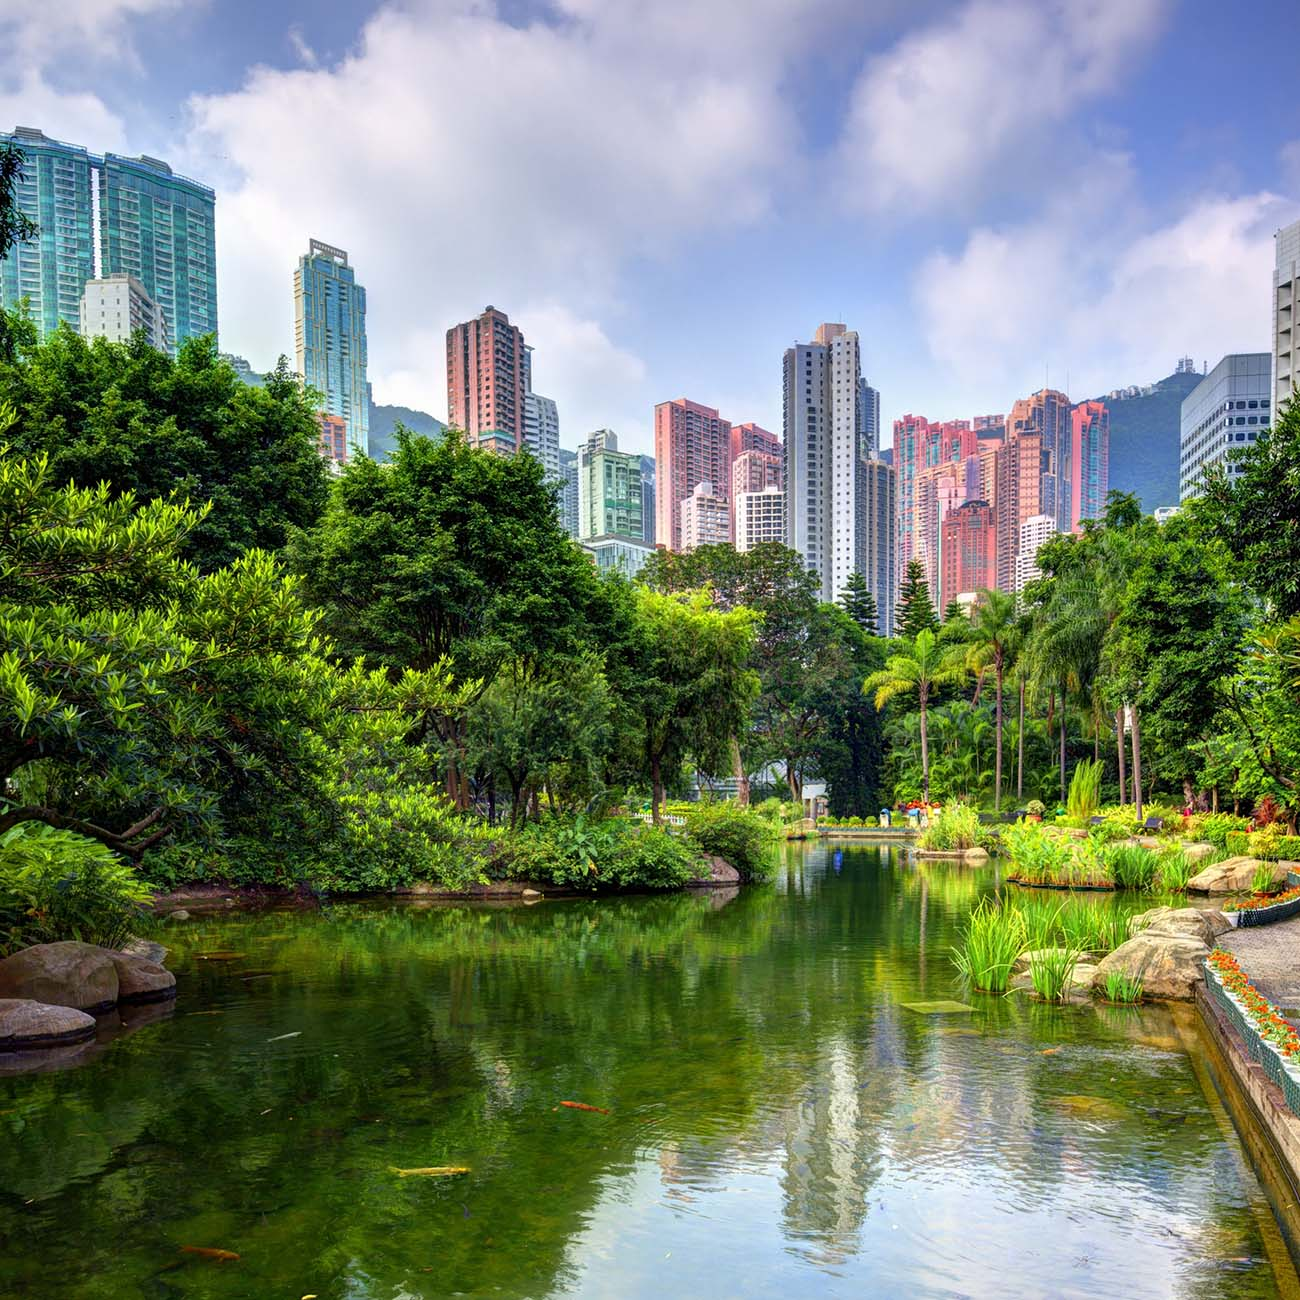 Pond and landscape of Hong Kong Park